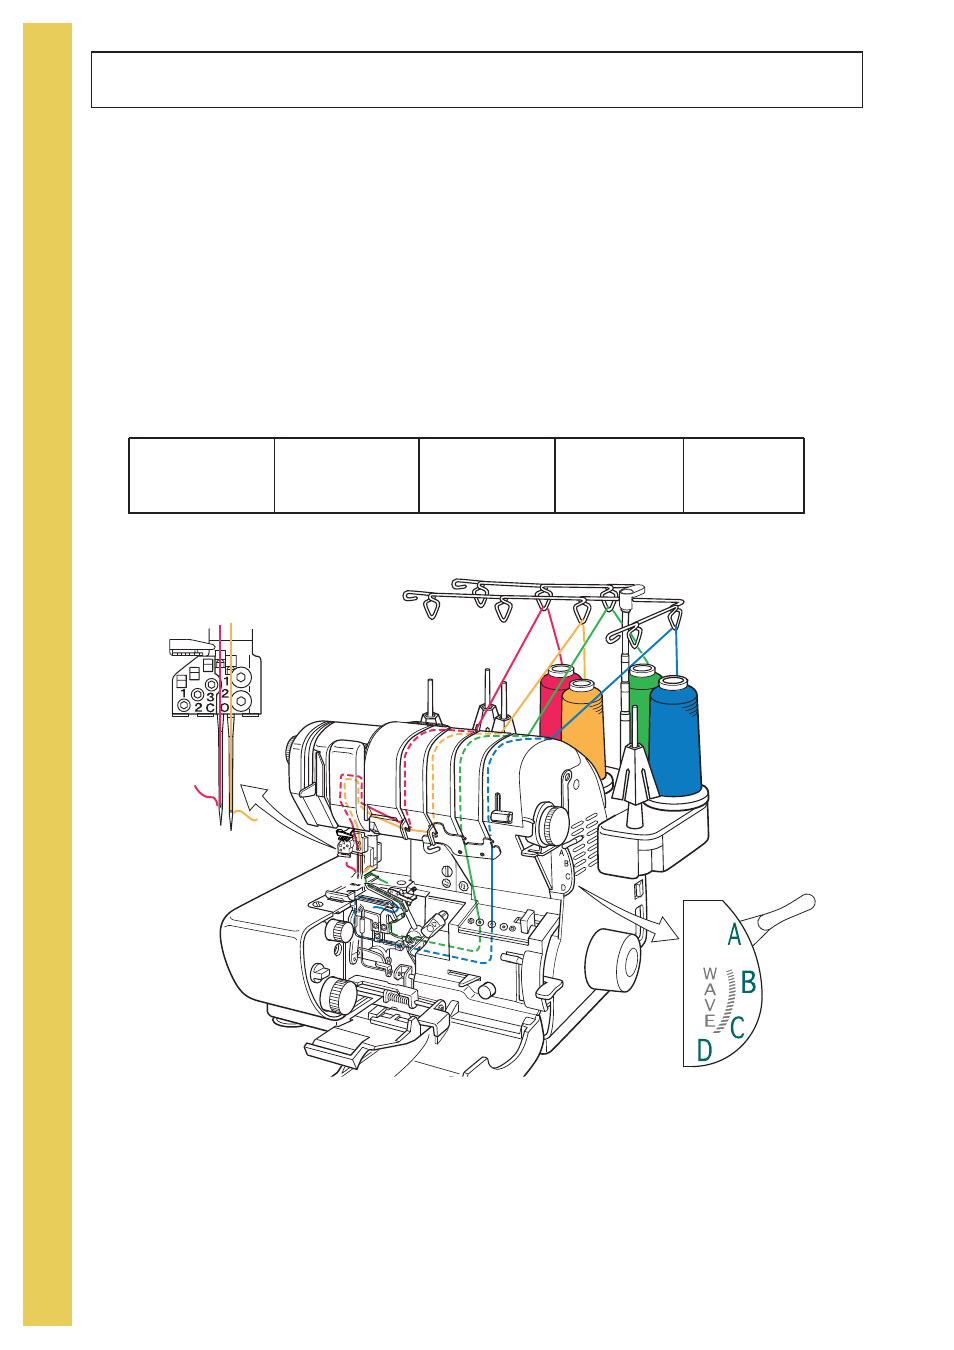 Thread Overlock Baby Lock Evolve Previous Model Ble8w Threading Diagram Instruction And Reference Guide User Manual Page 30 92